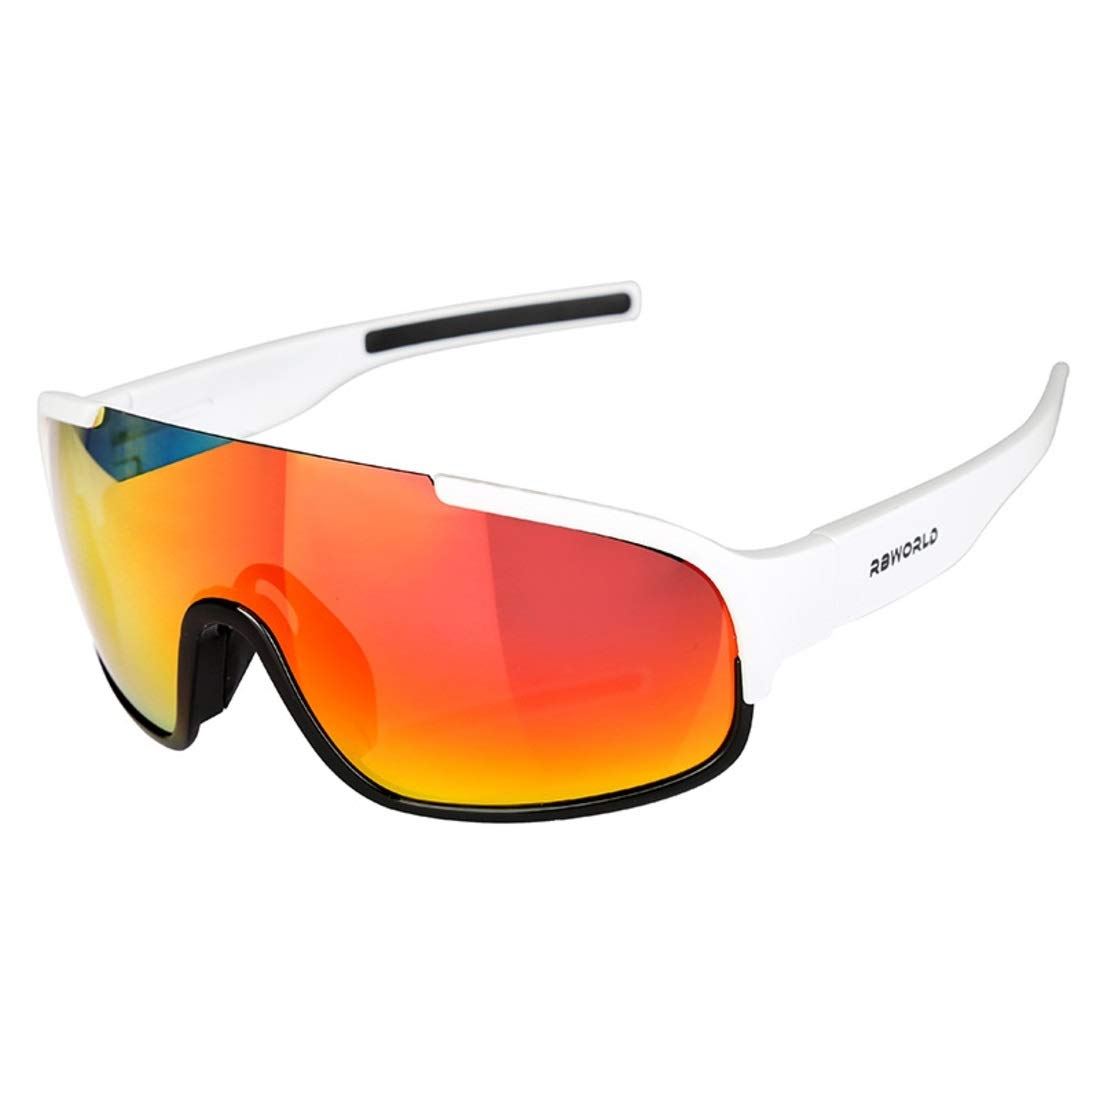 BAOYIT Outdoor Riding Windproof Sand-Proof Glasses Men and Women Riding Equipment Riding Sunglasses Protection Eye (Color : White) by BAOYIT